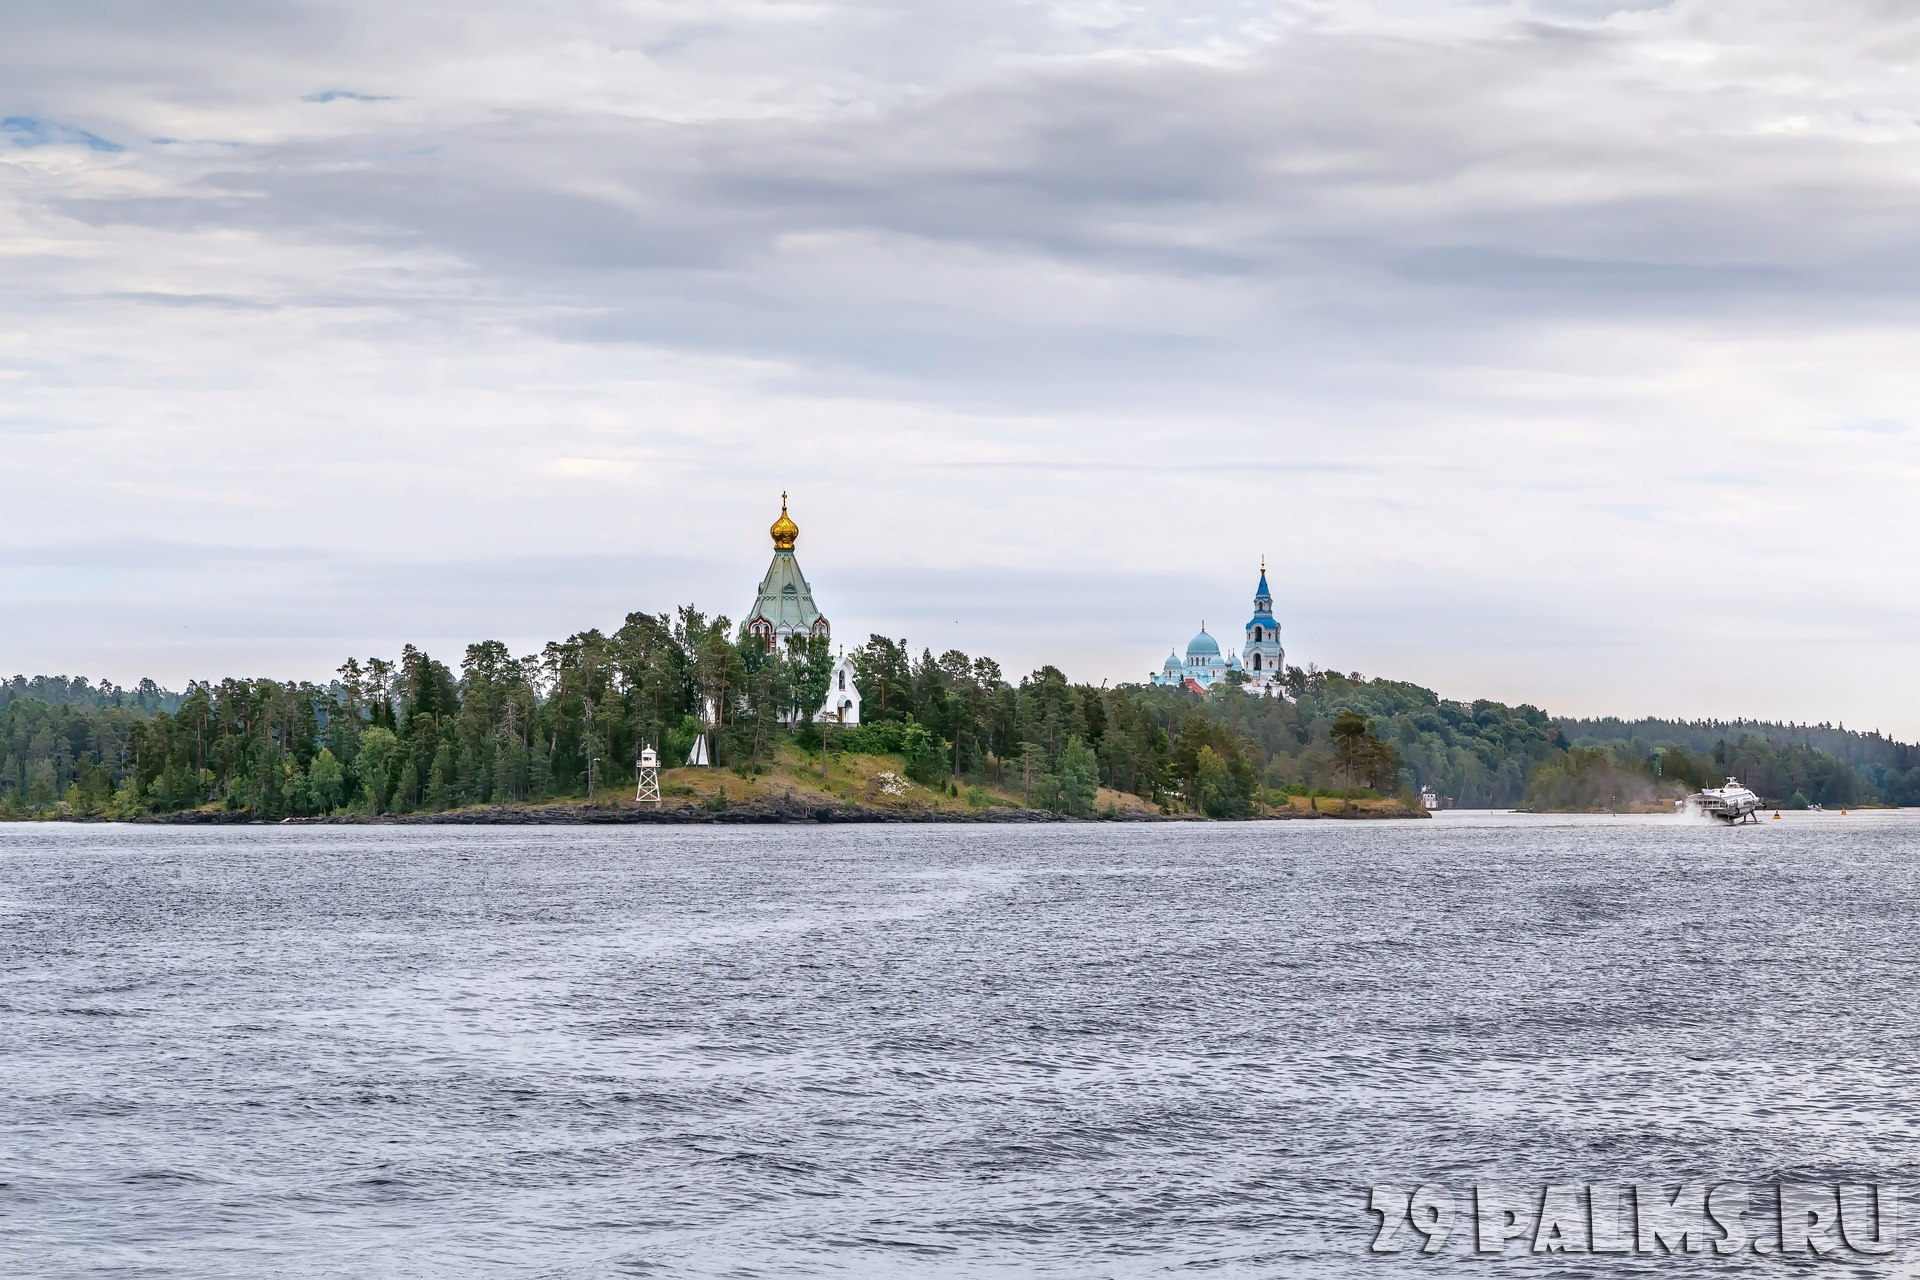 Клуб путешествий Павла Аксенова. Россия. Карелия. Остров Валаам. View of Valaam Island from ladoga lake, Russia. Фото borisb17-Depositphotos